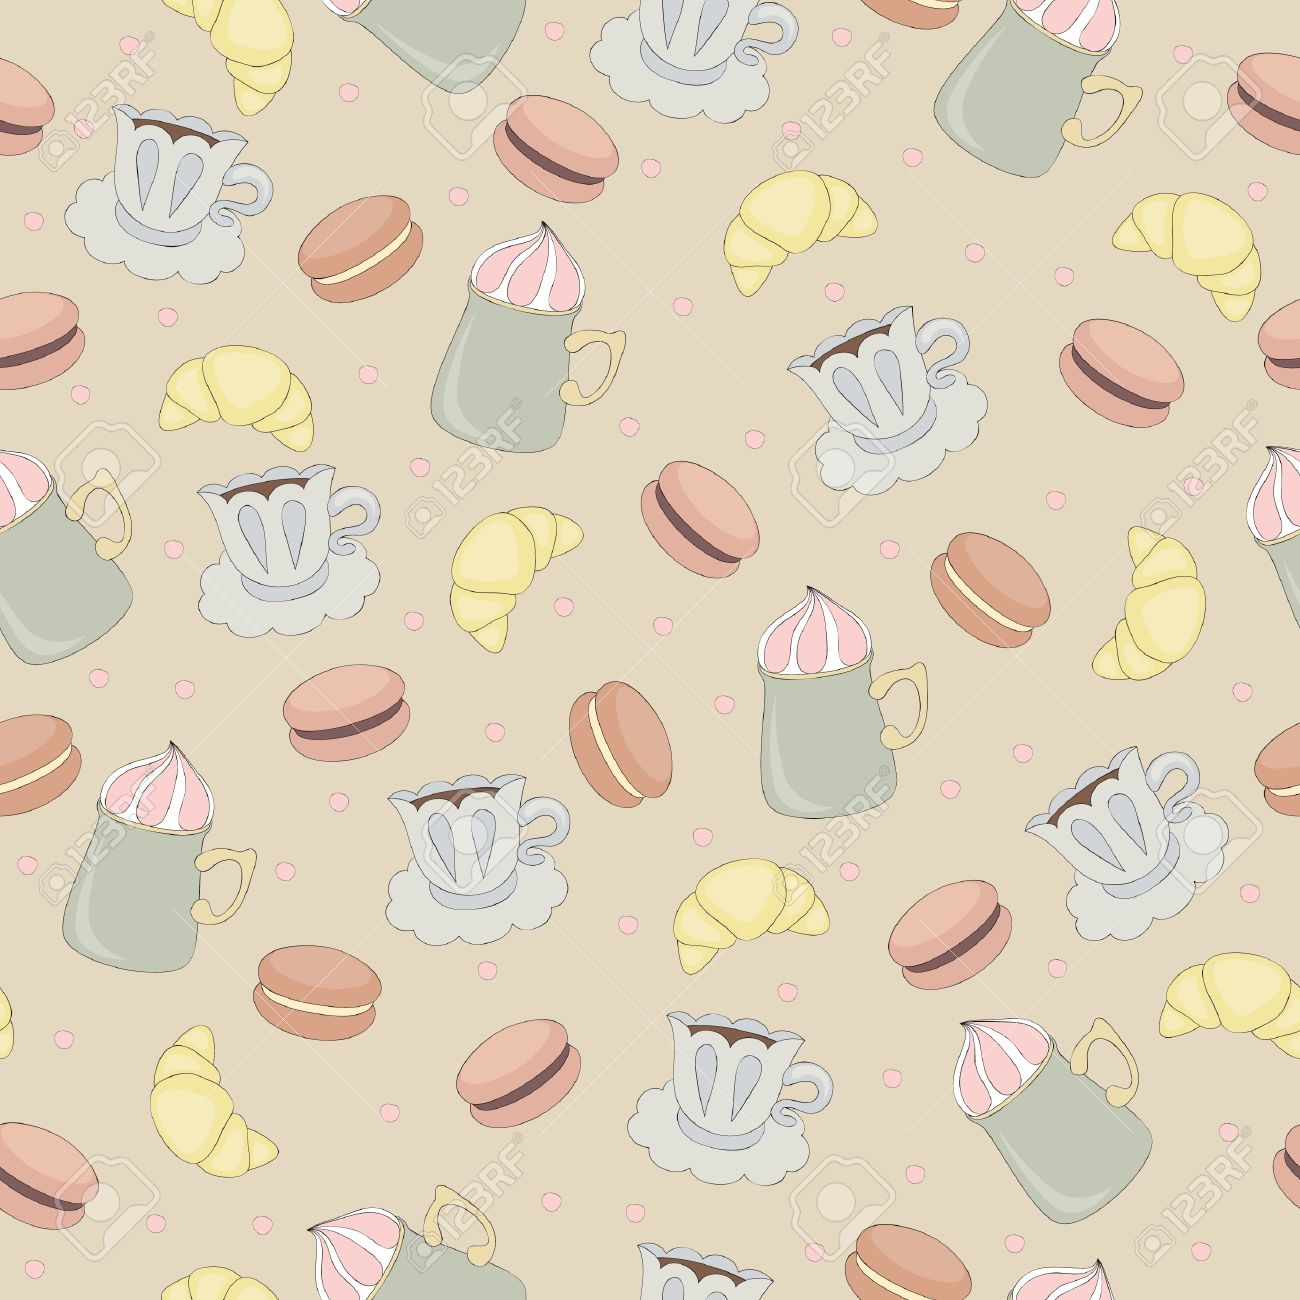 Seamless Wallpaper In Vintage Style